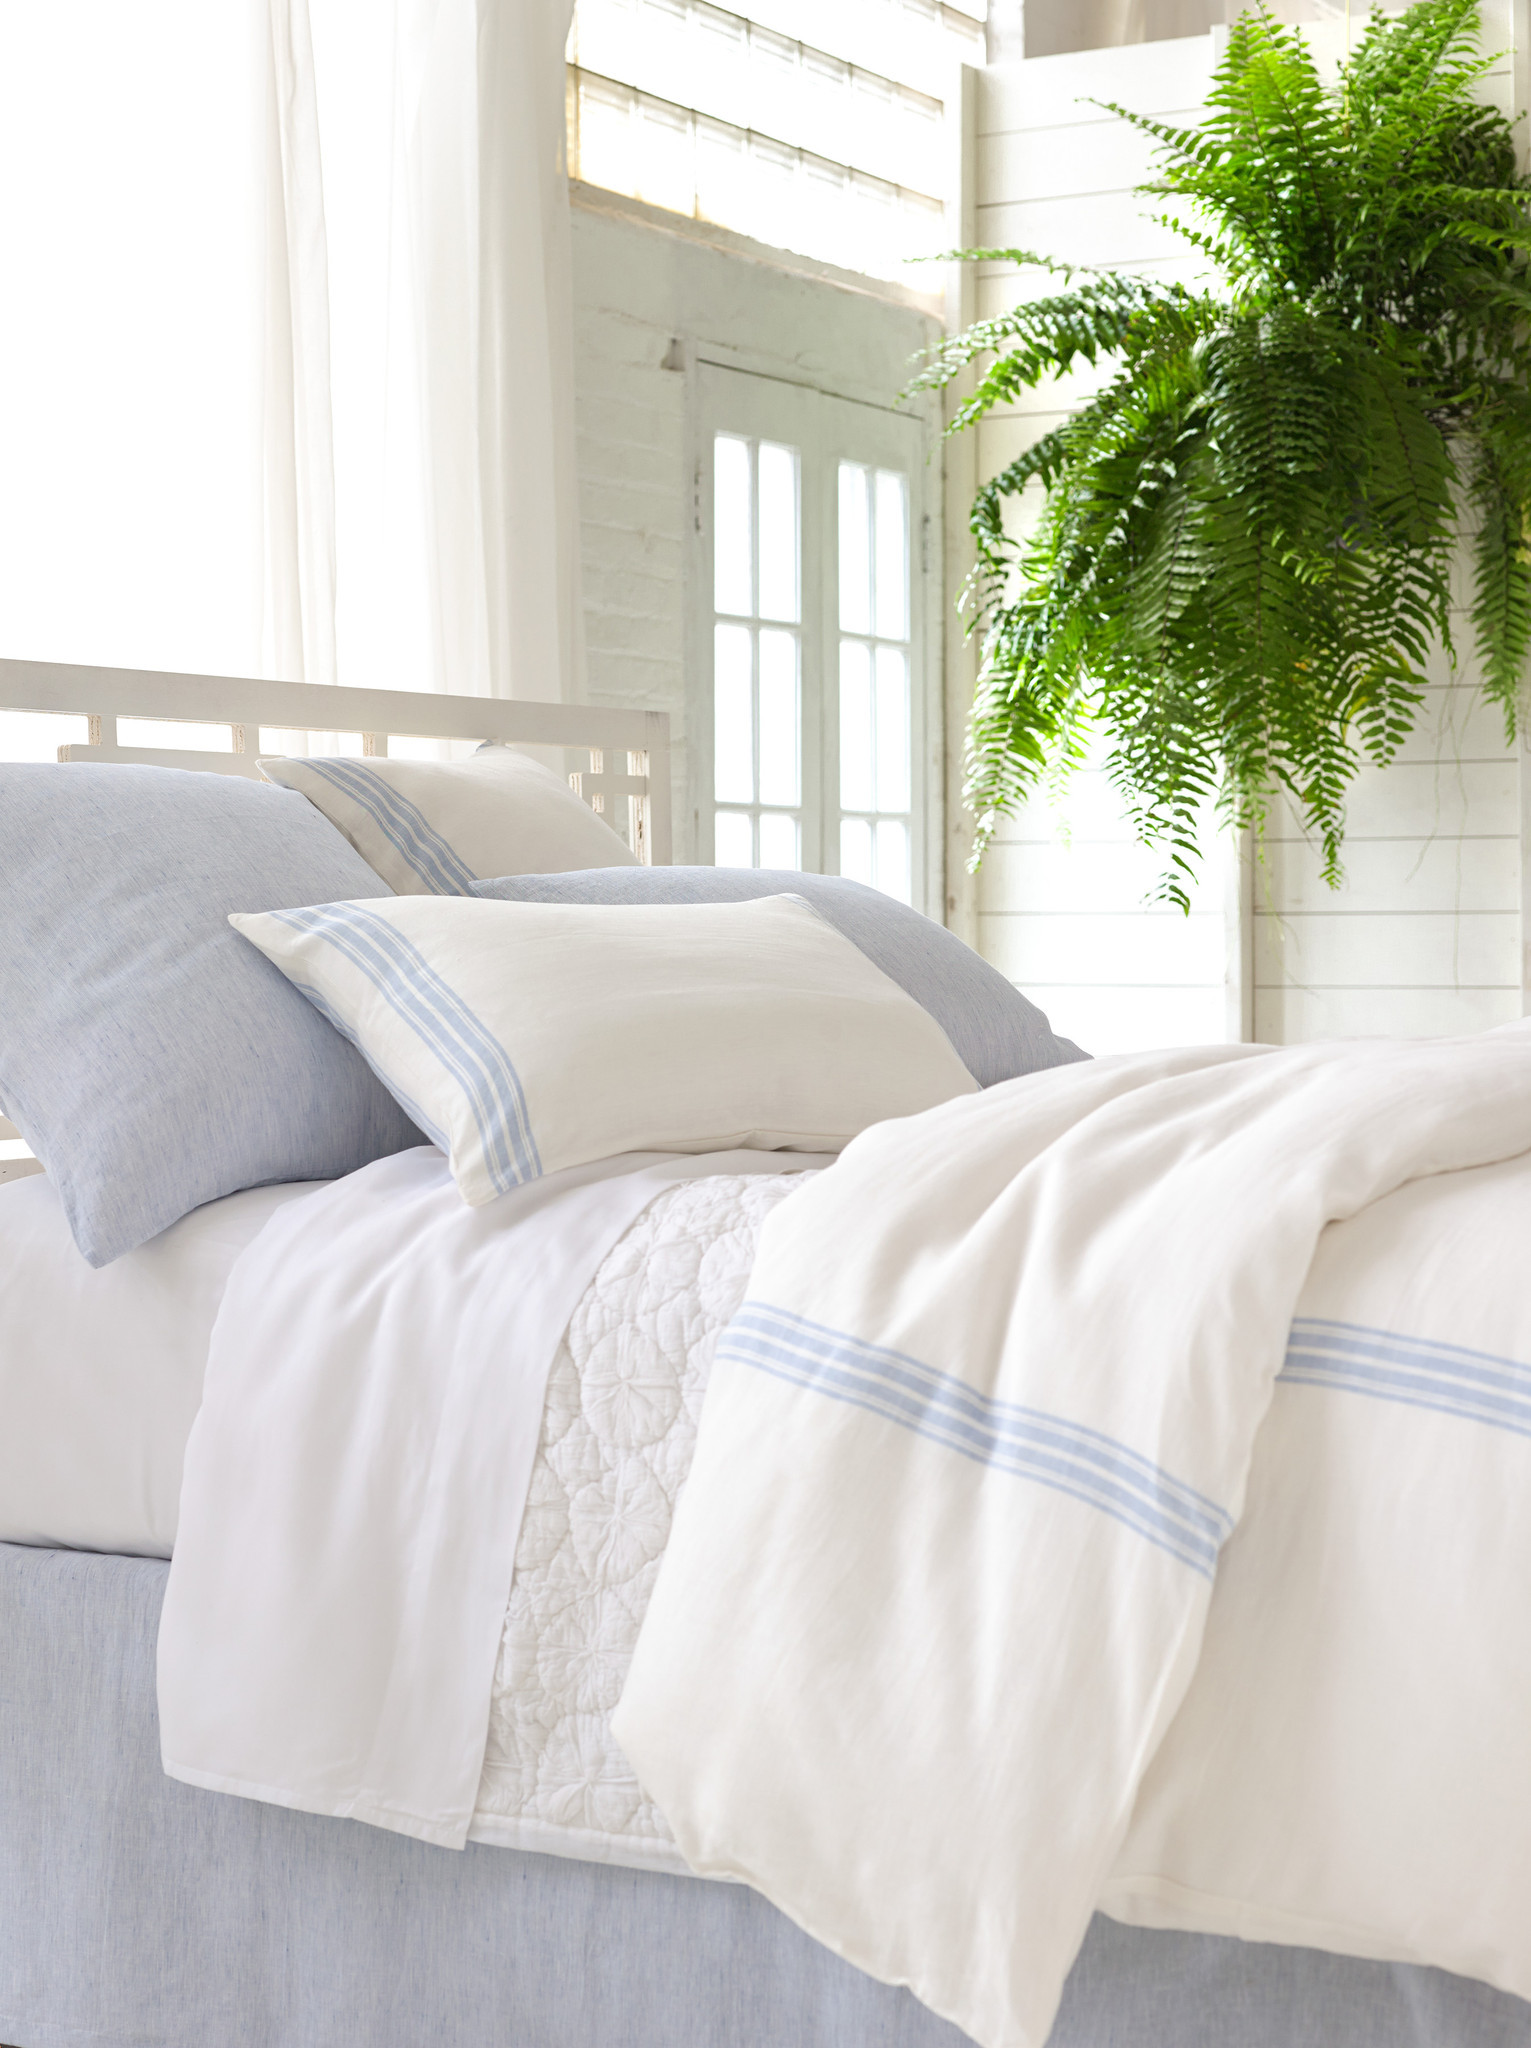 Bedroom Varana Linen French Blue Bedding Design By Pine Cone Hill - French blue bedroom design